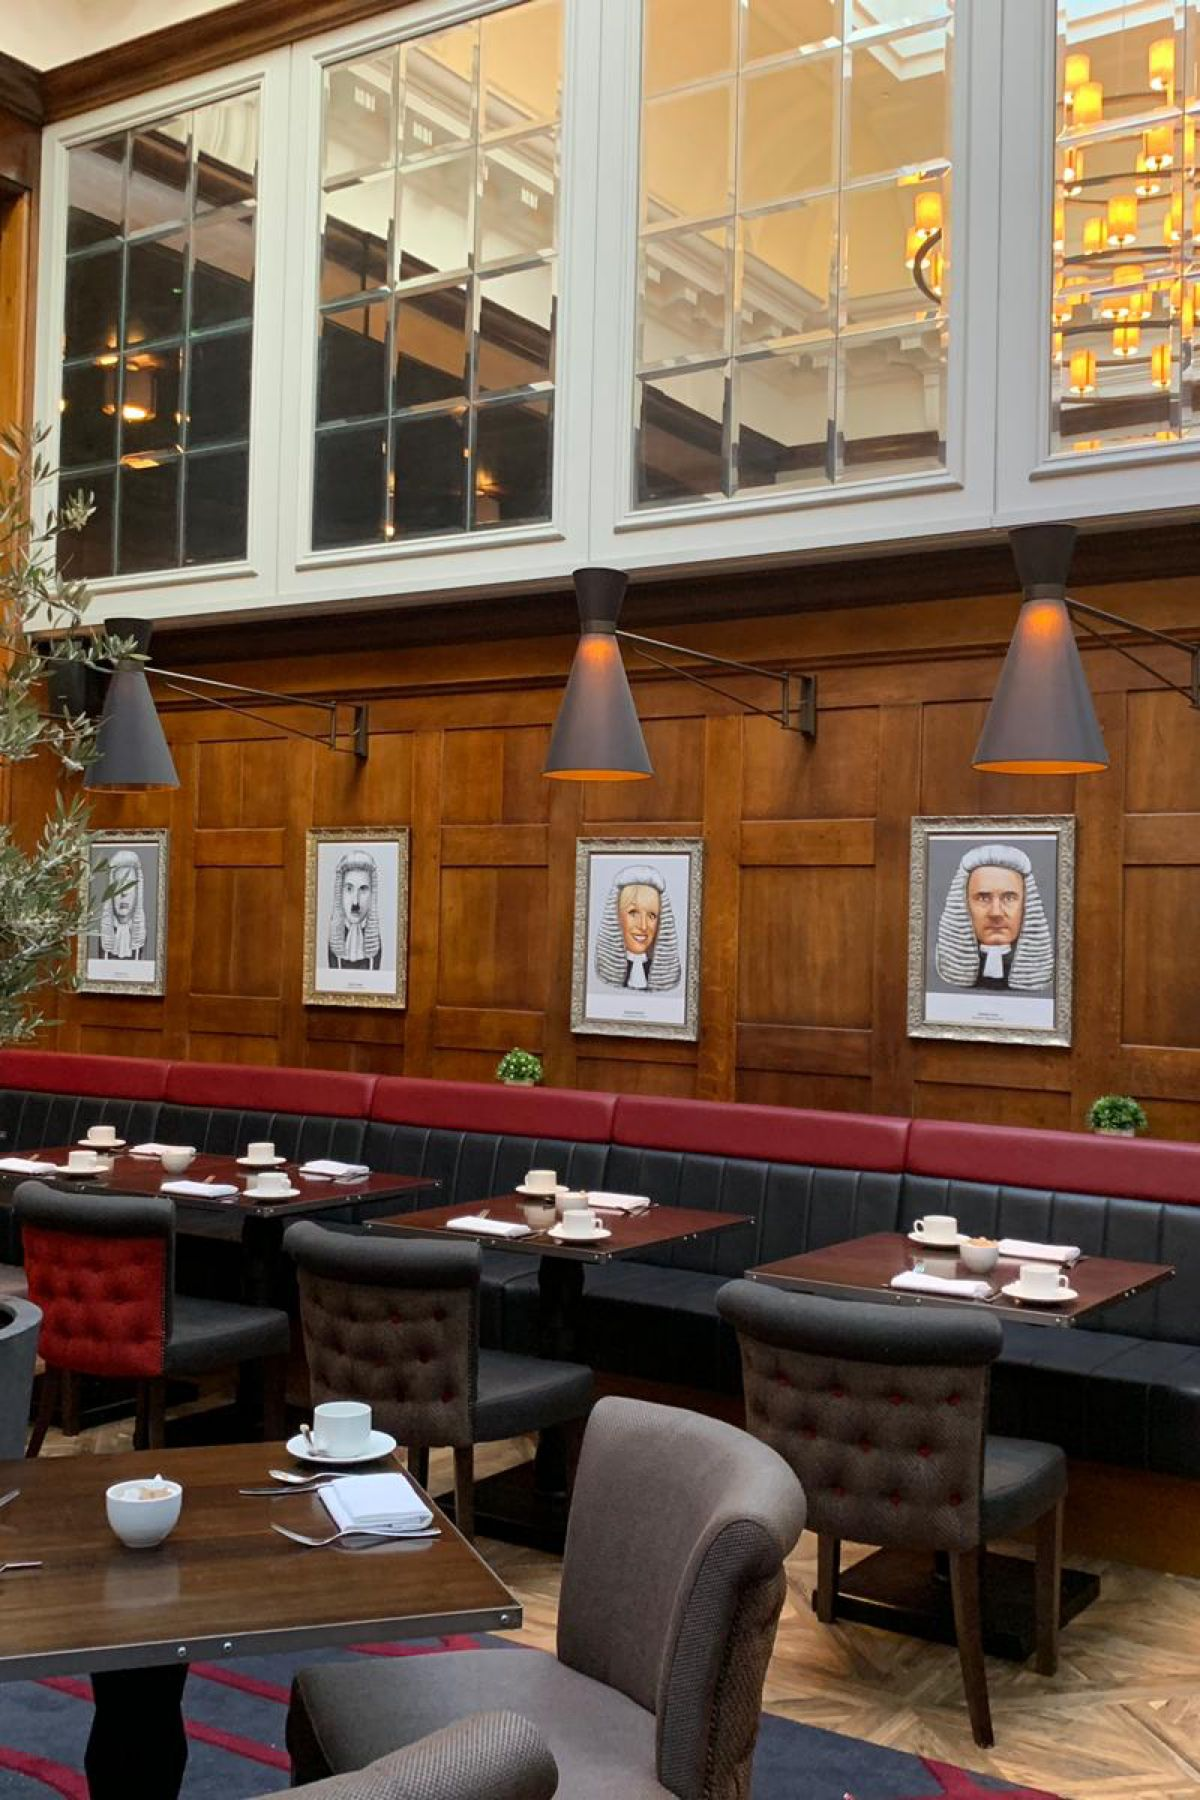 Courthouse Hotel Shoreditch: Courthouse Hotel Shoreditch #courthousehotel #londonhotels